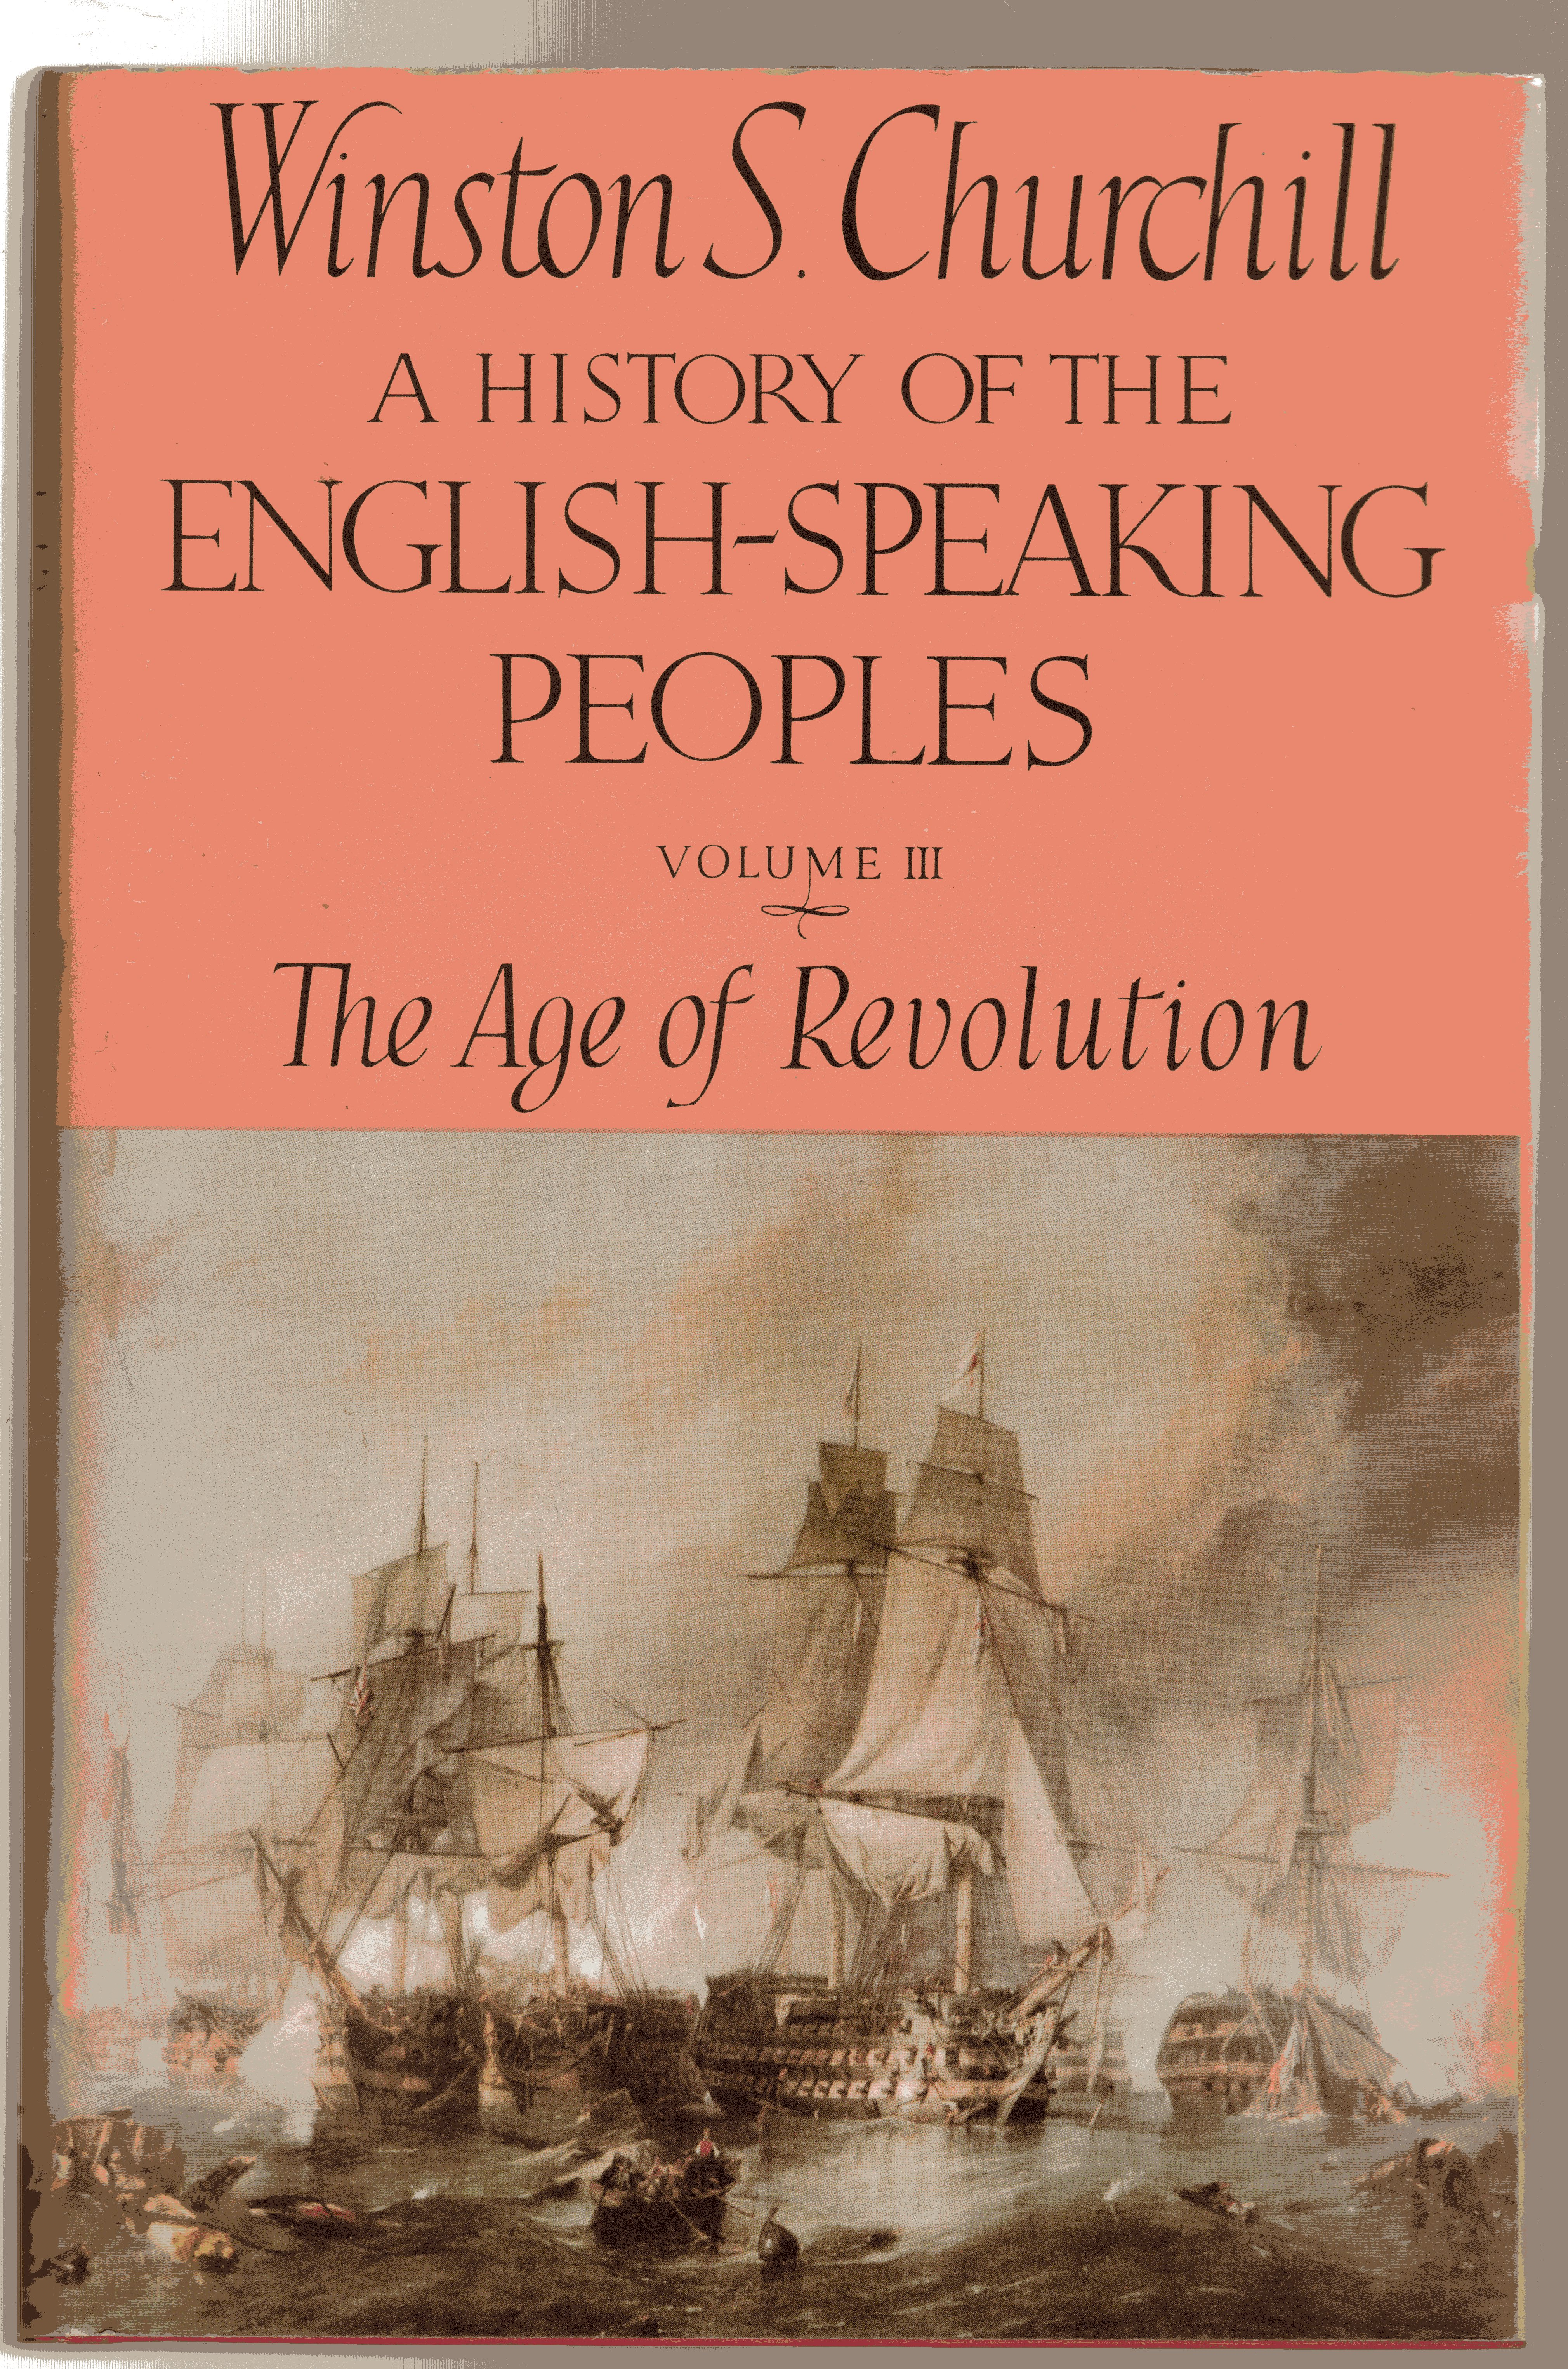 Image for A History of the English-Speaking Peoples - Volume III The Age of Revolution